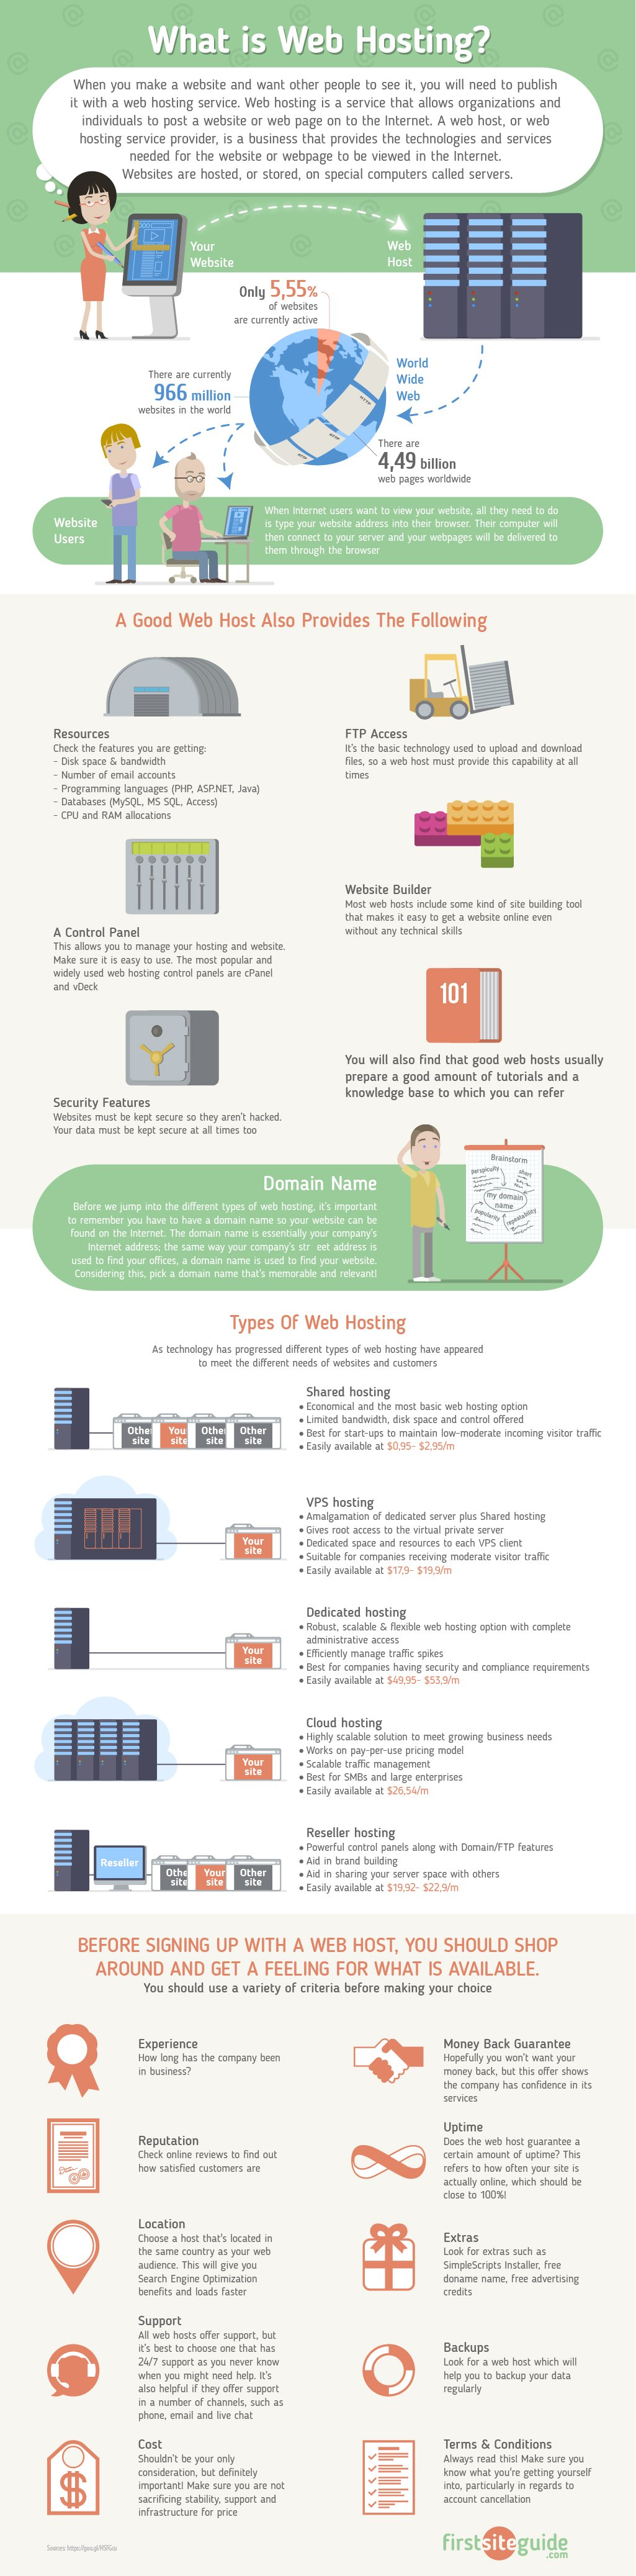 what-is-web-hosting-infographic.jpg